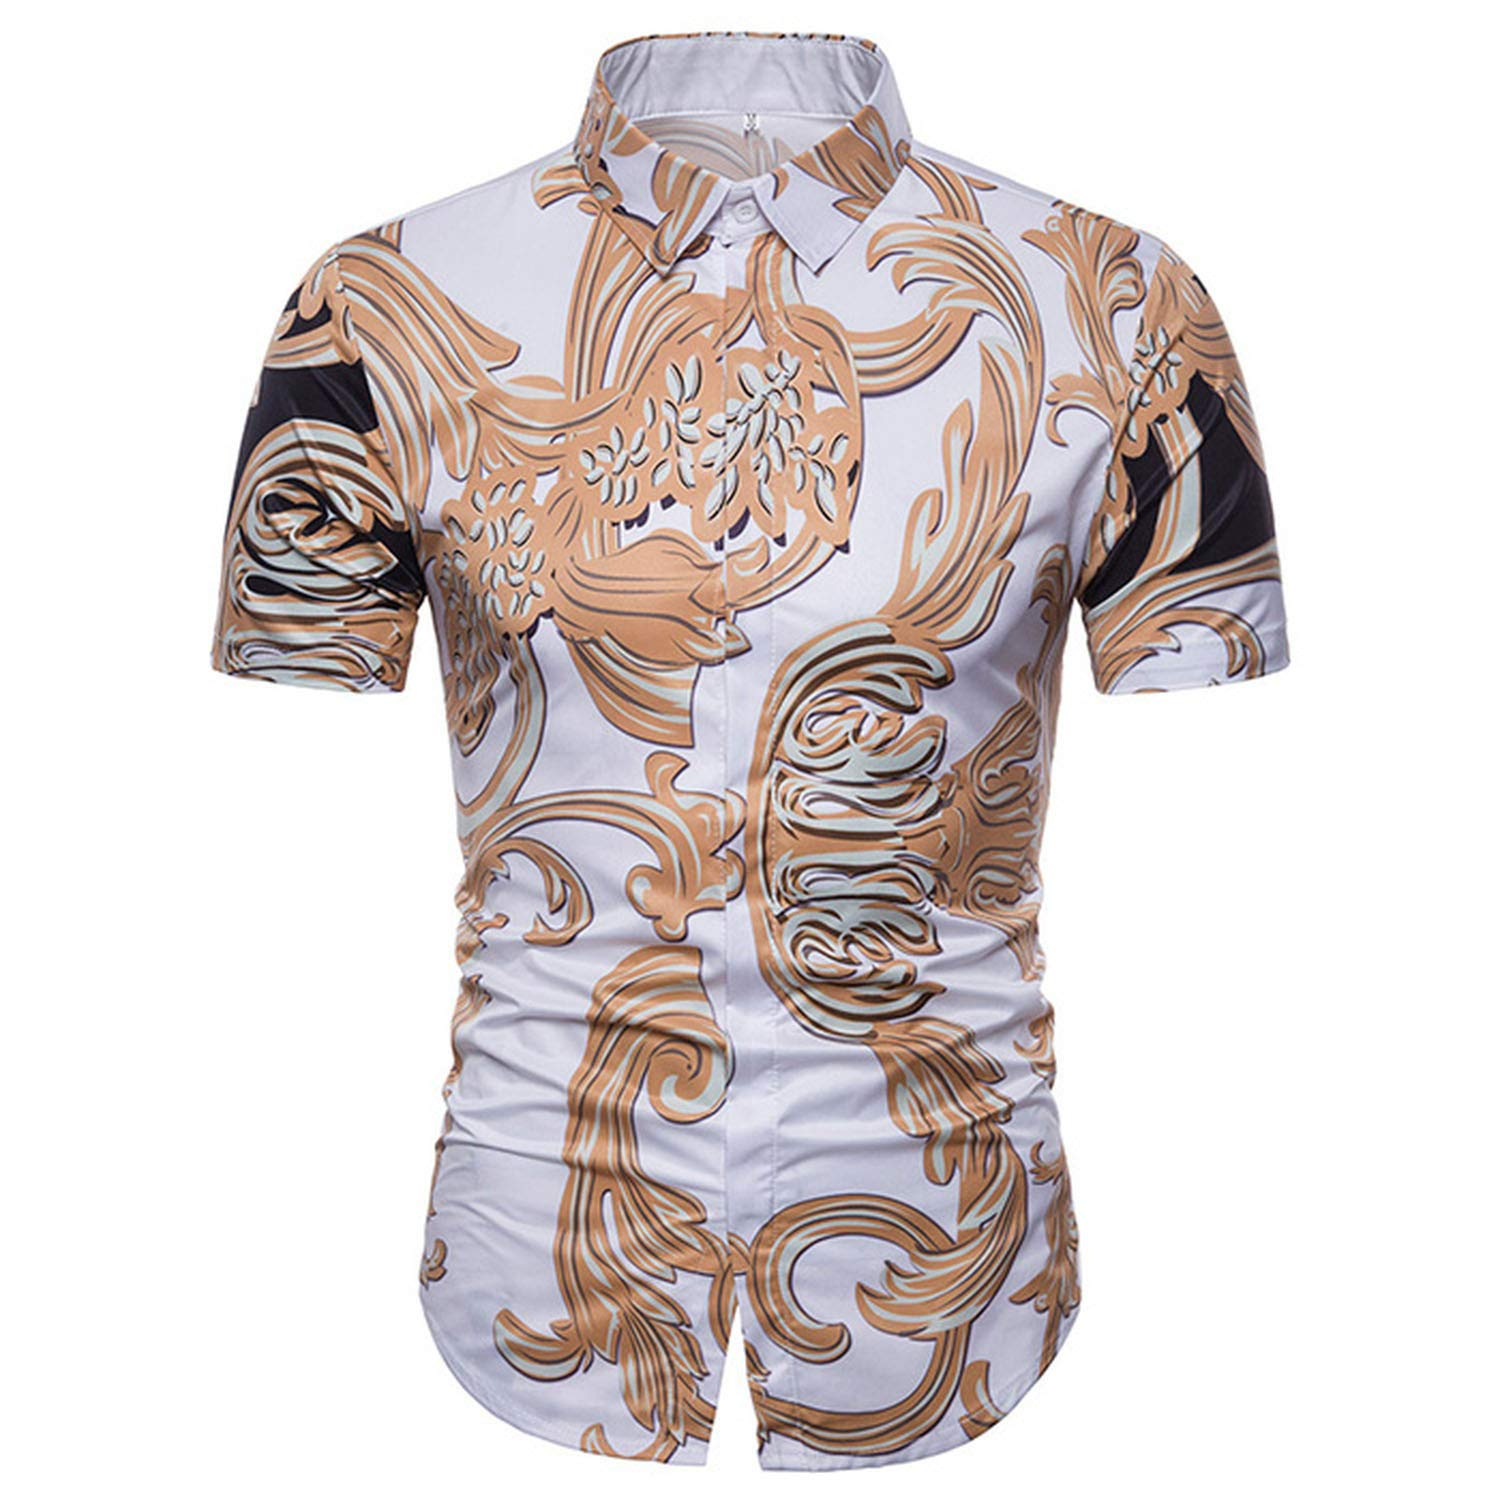 soft lover 2019 Luxury Brand Slim Fit Short Sleeve Homme Summer Casual Party Business Shirts Male